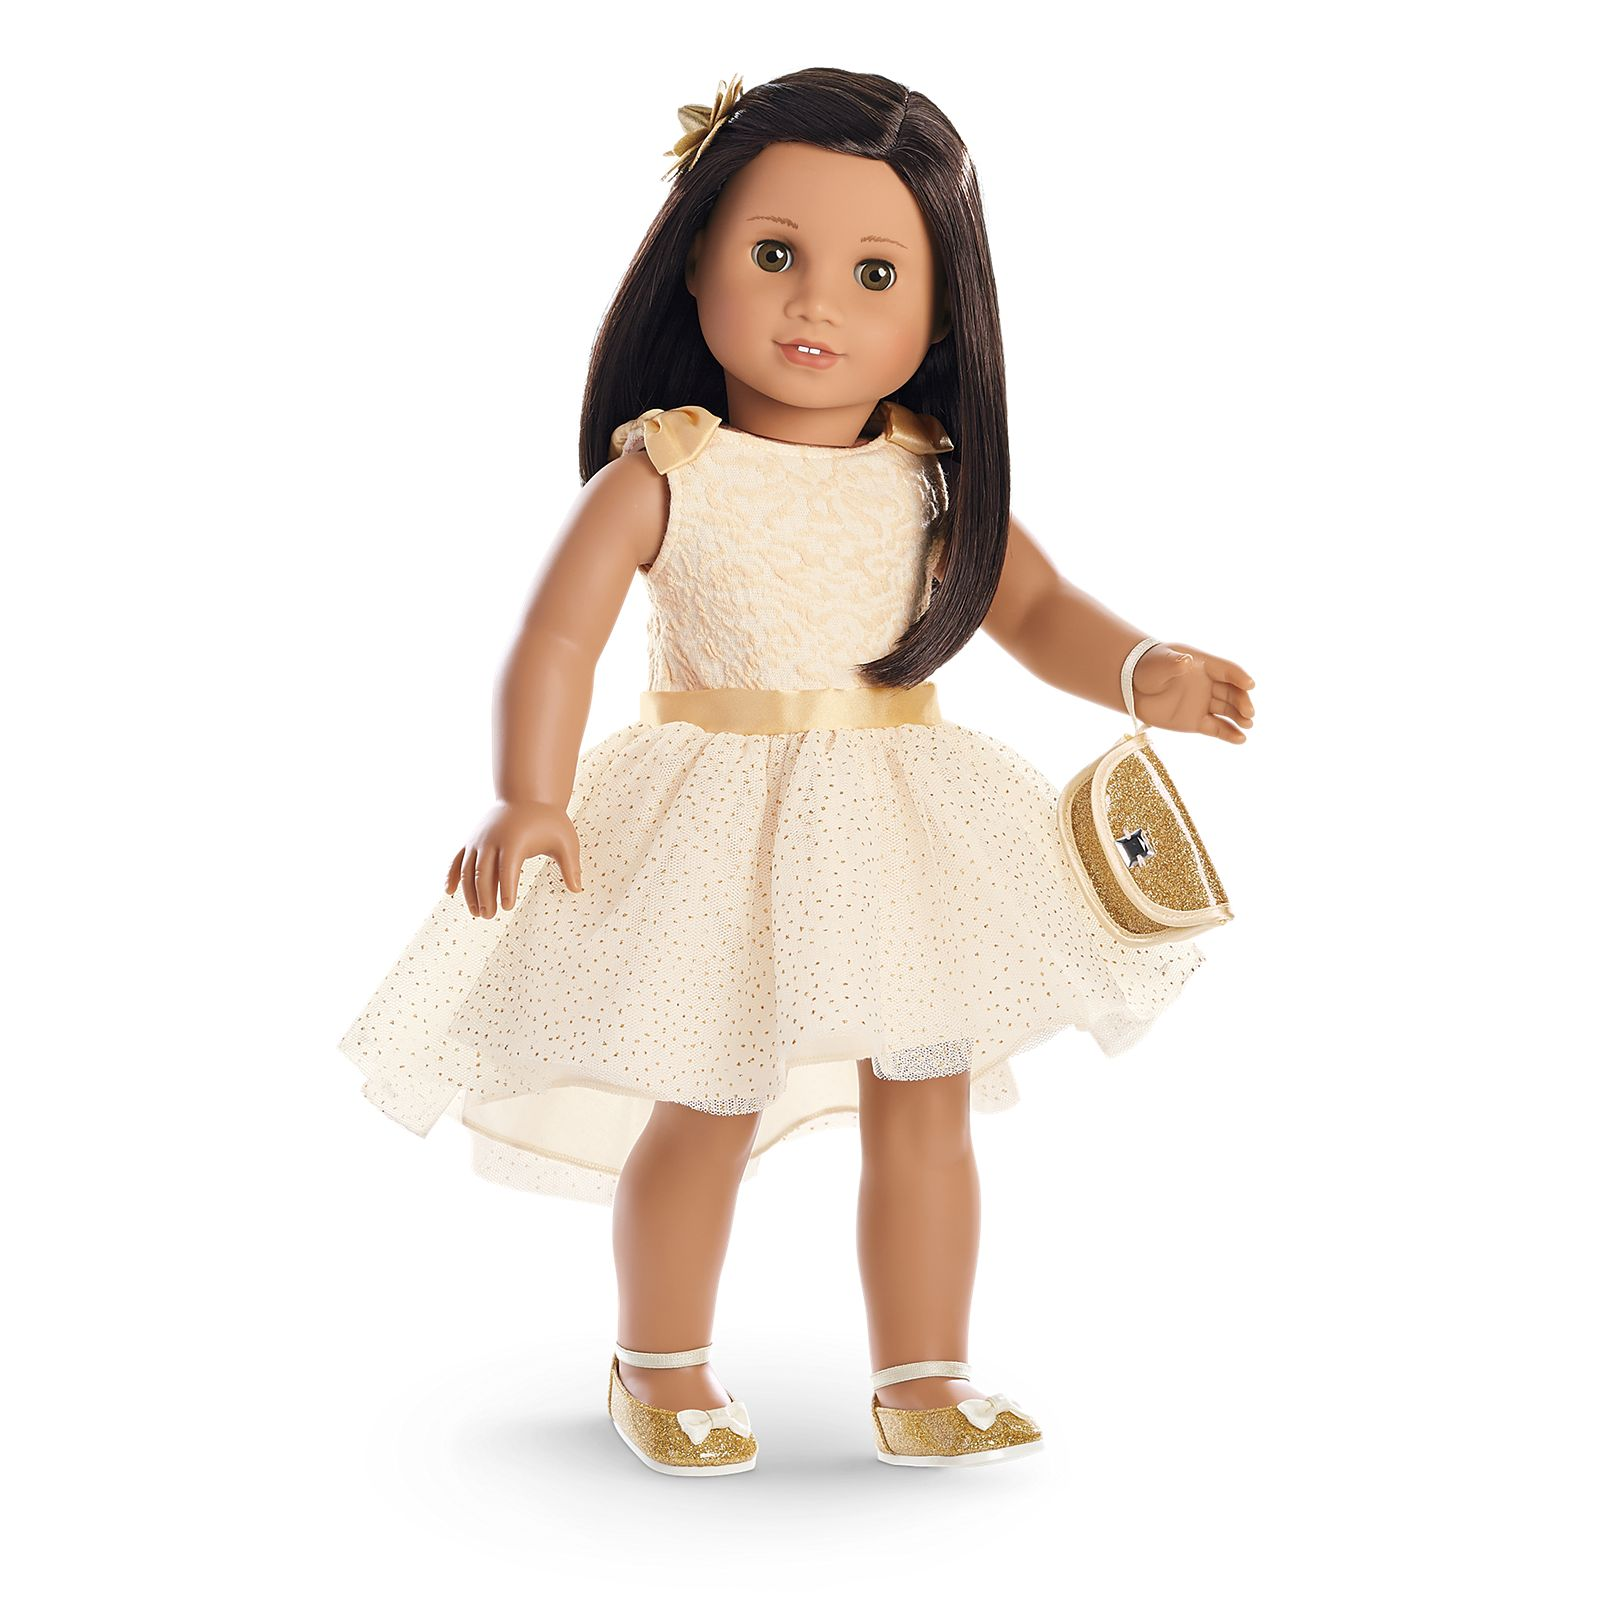 Ivory Slip On Dress Shoes with Flower Design Fits 18 inch American Girl Dolls